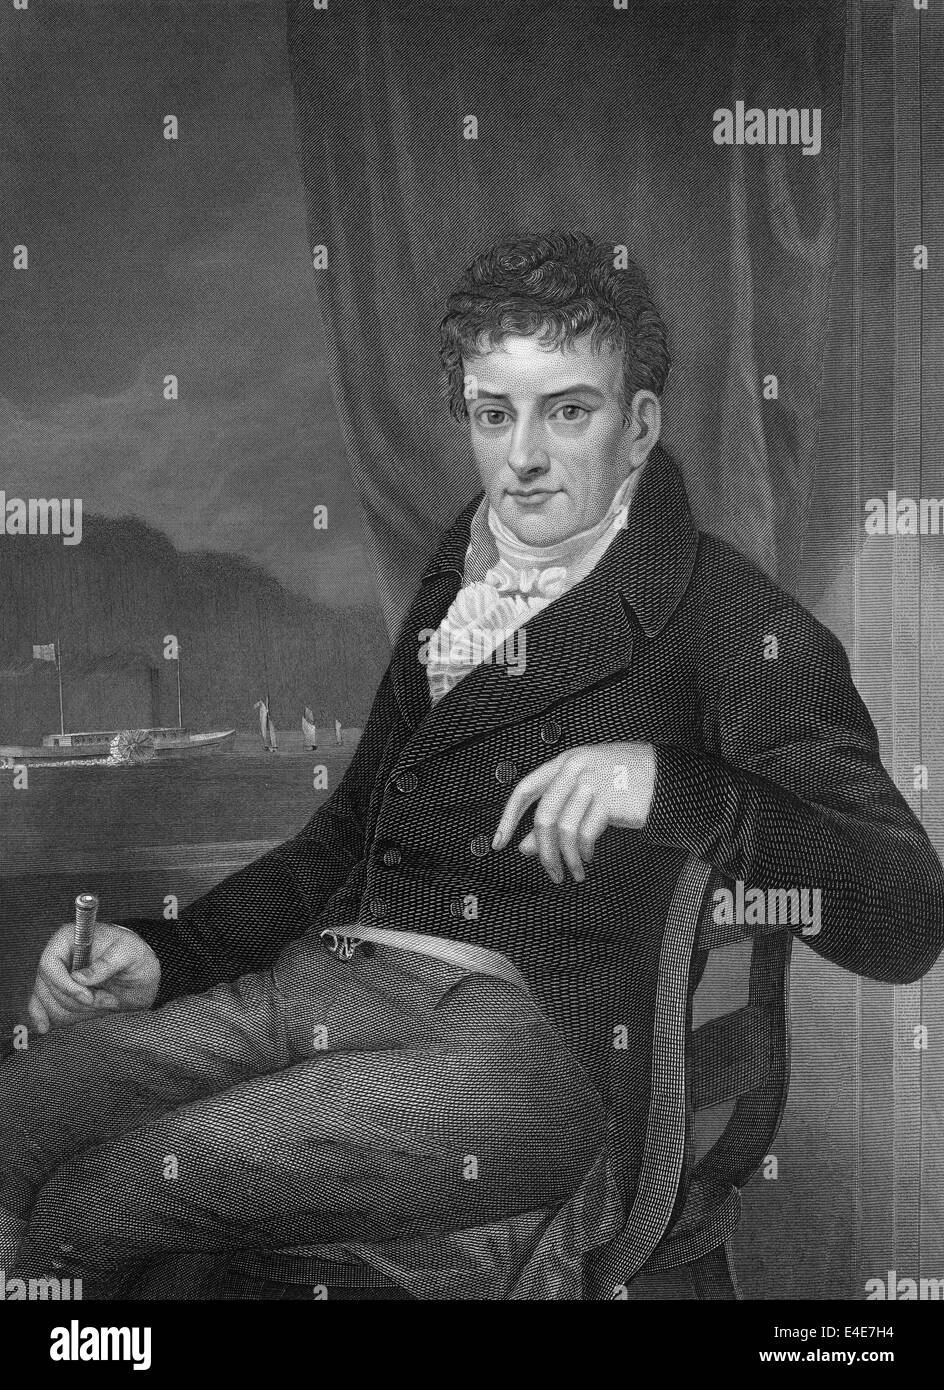 portrait of Robert Fulton, 1765 - 1815, an engineer who built steamboats and the submarine Nautilus, - Stock Image